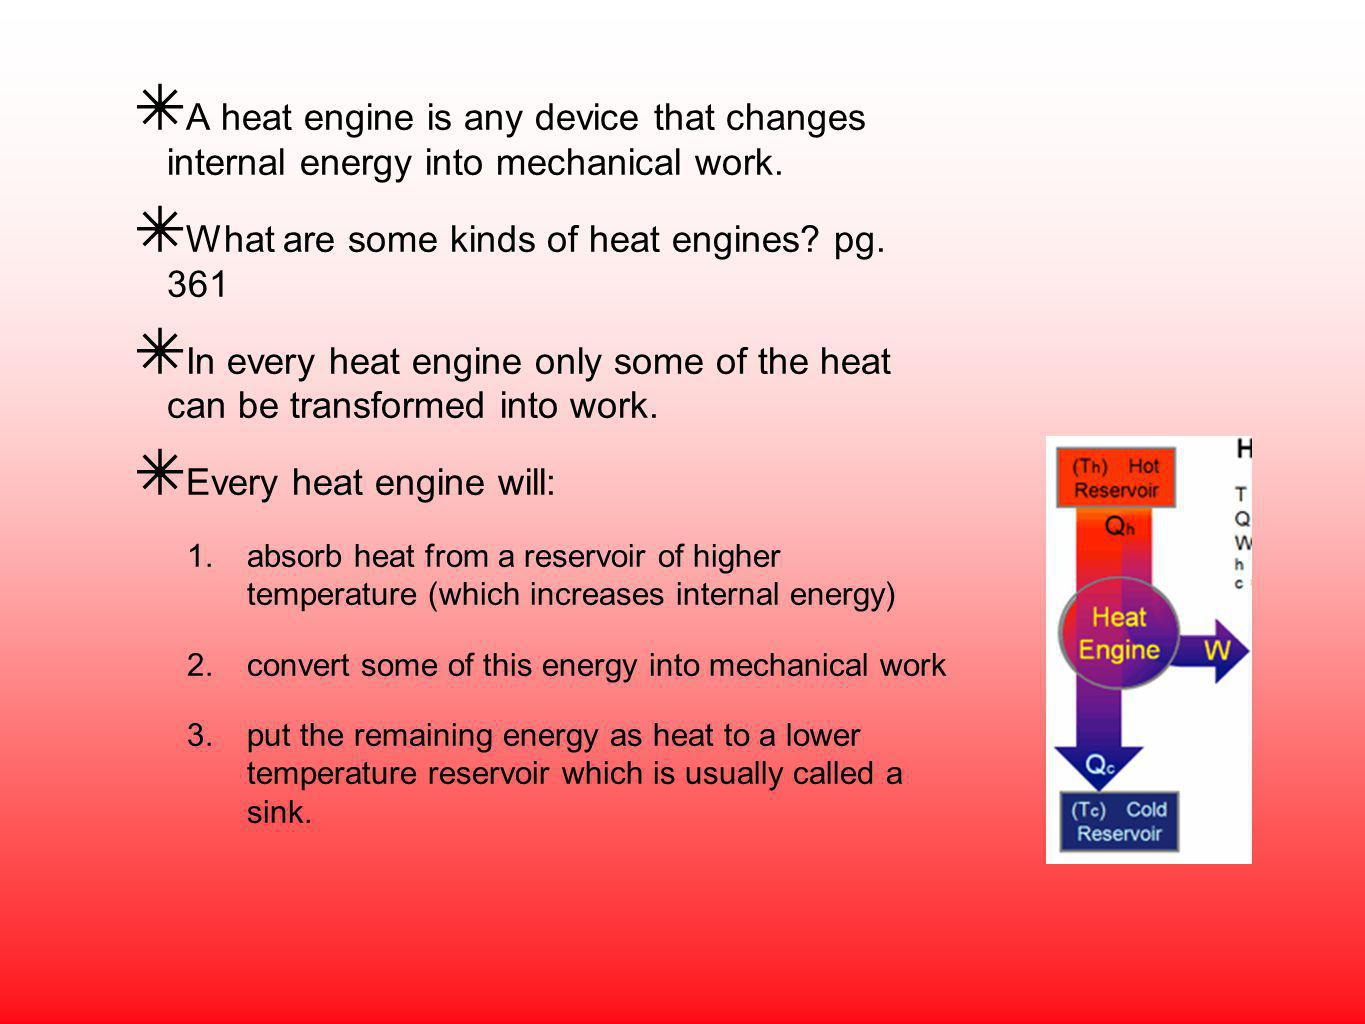 What are some kinds of heat engines pg. 361